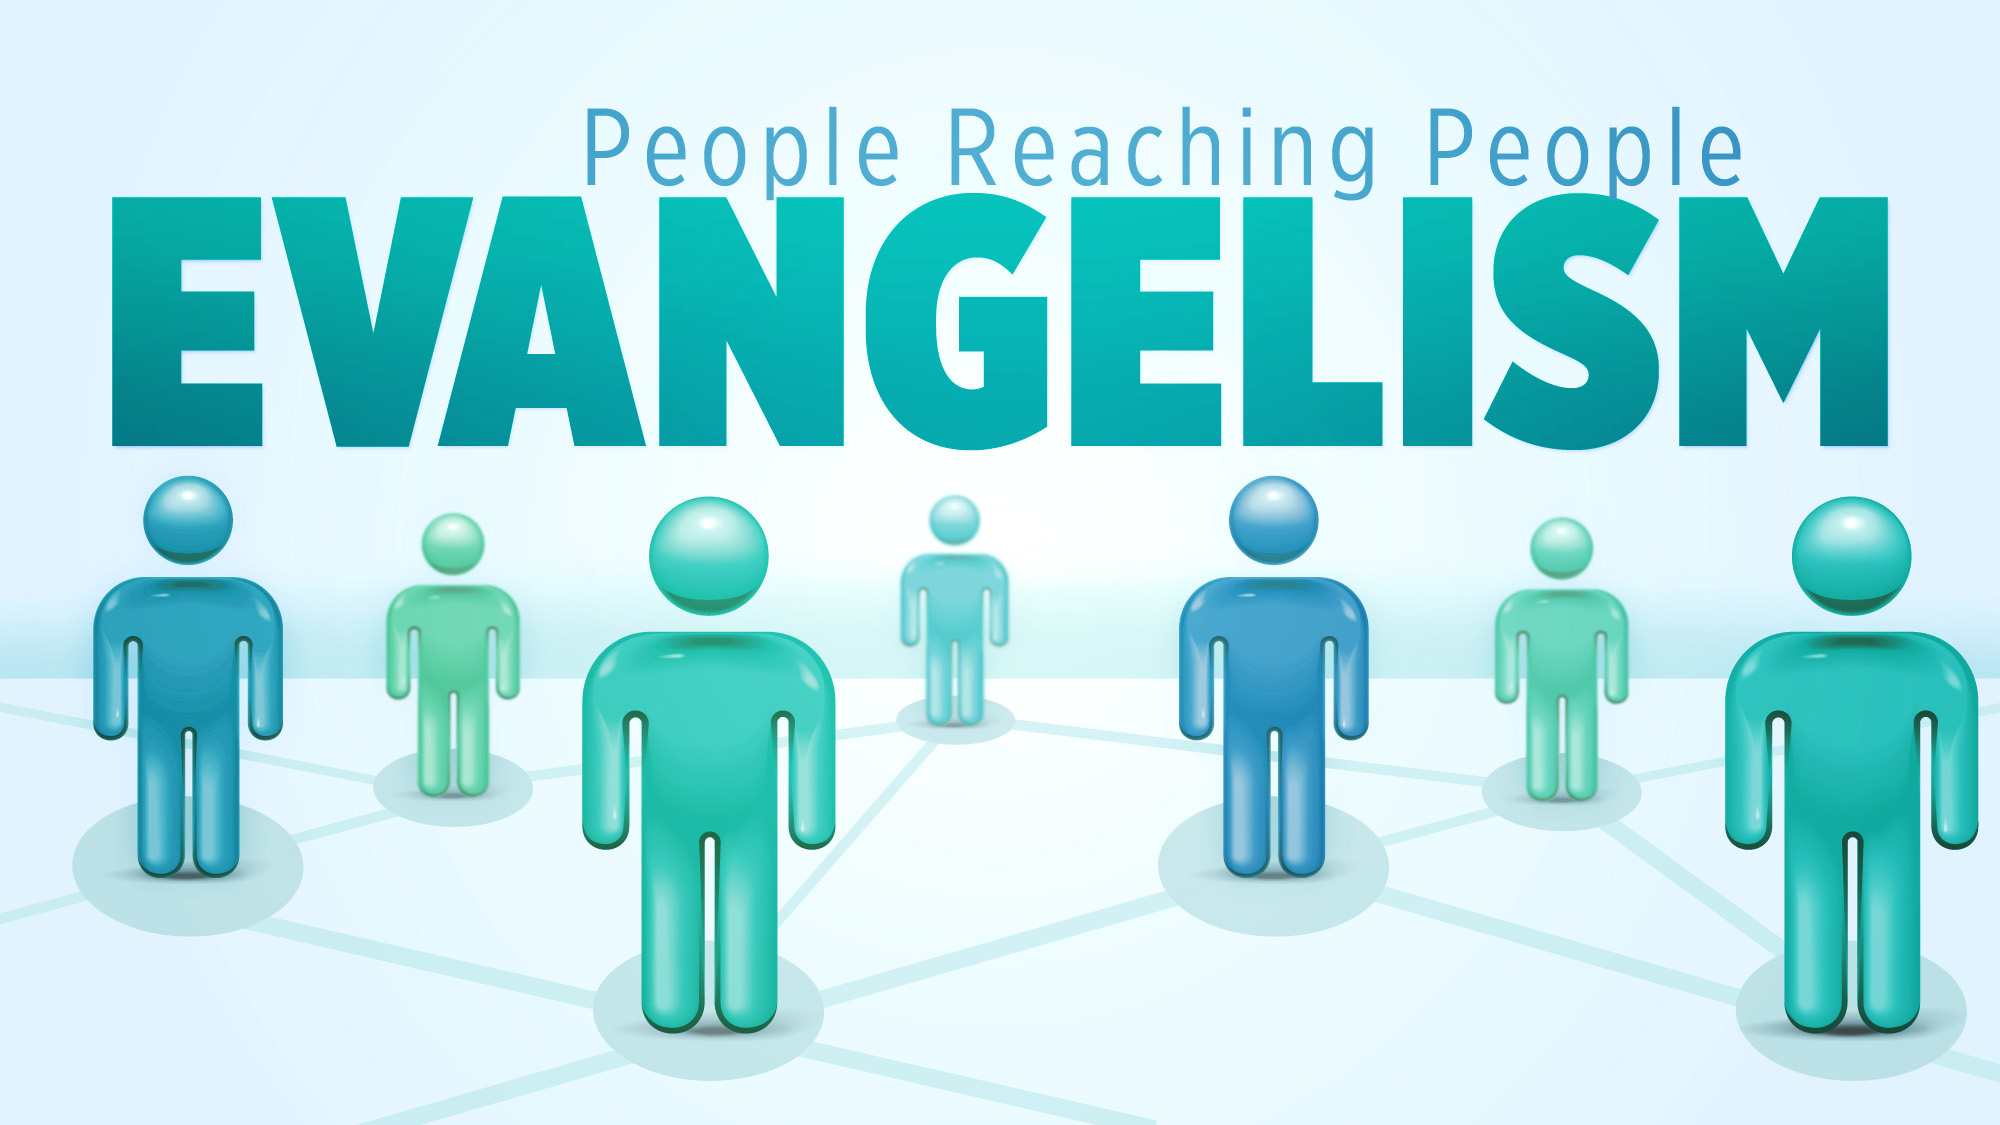 Free Evangelism Cliparts, Download Free Clip Art, Free Clip.